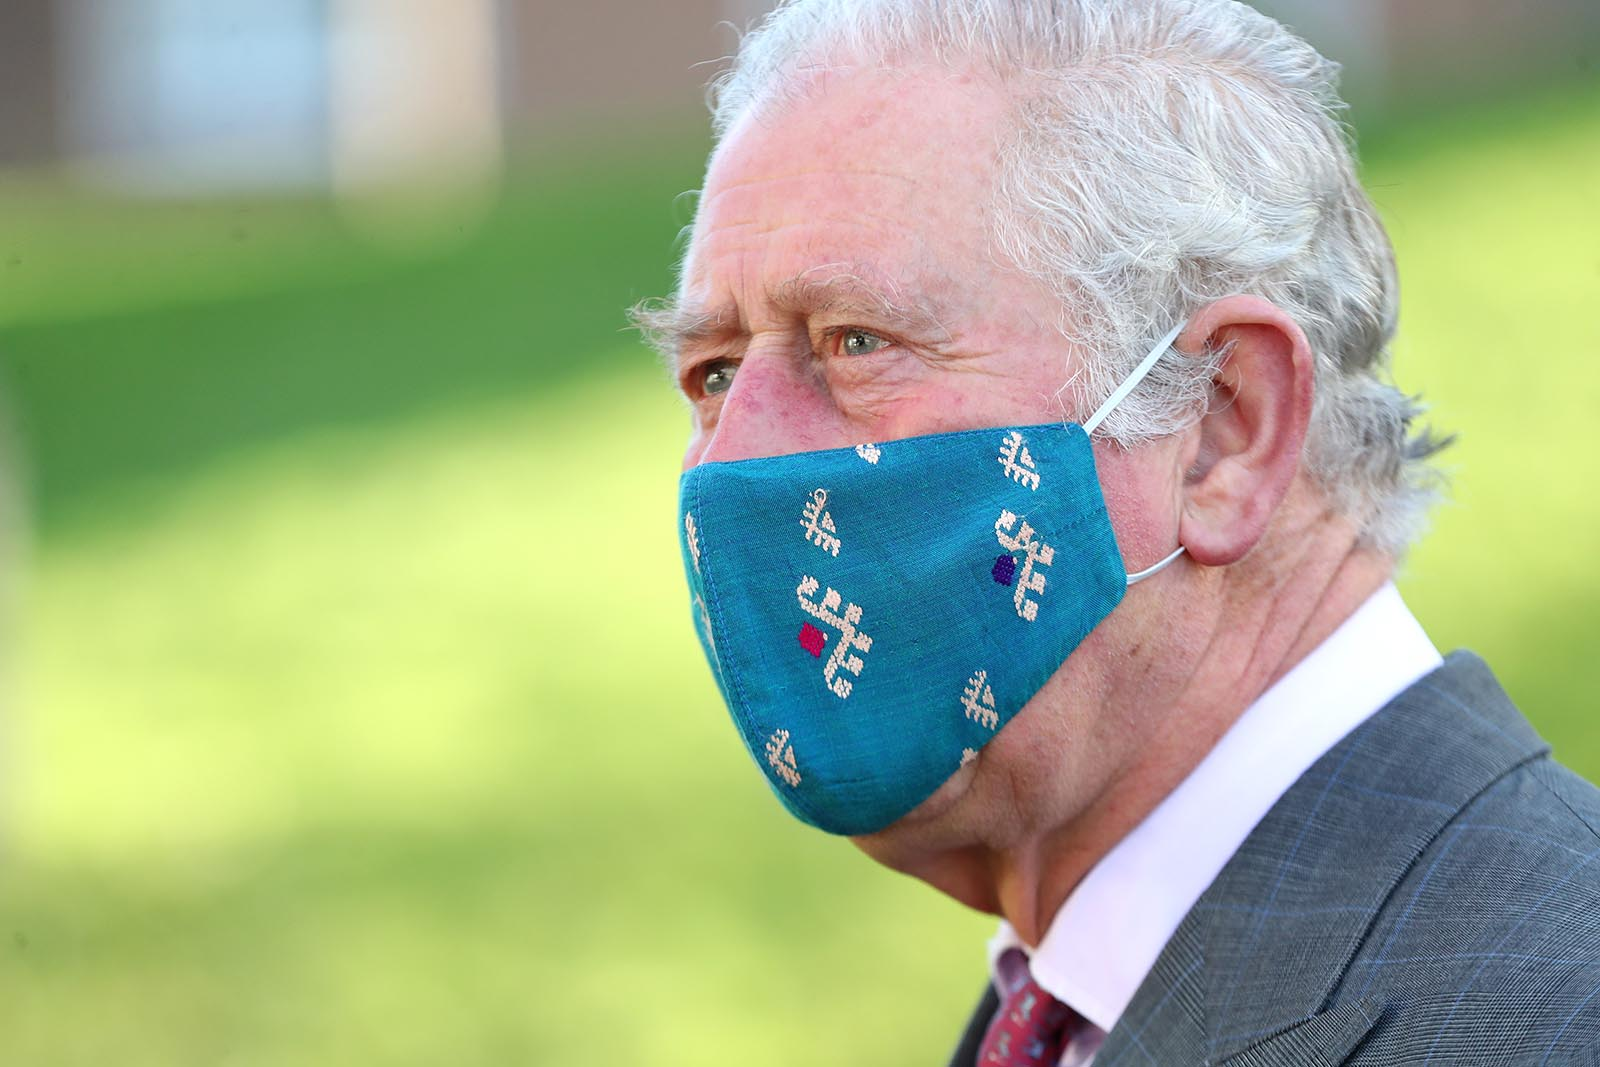 Prince Charles wears a face mask during a visit to Gloucestershire Vaccination Centre at Gloucestershire Royal Hospital on December 17, 2020 in Gloucester, England.